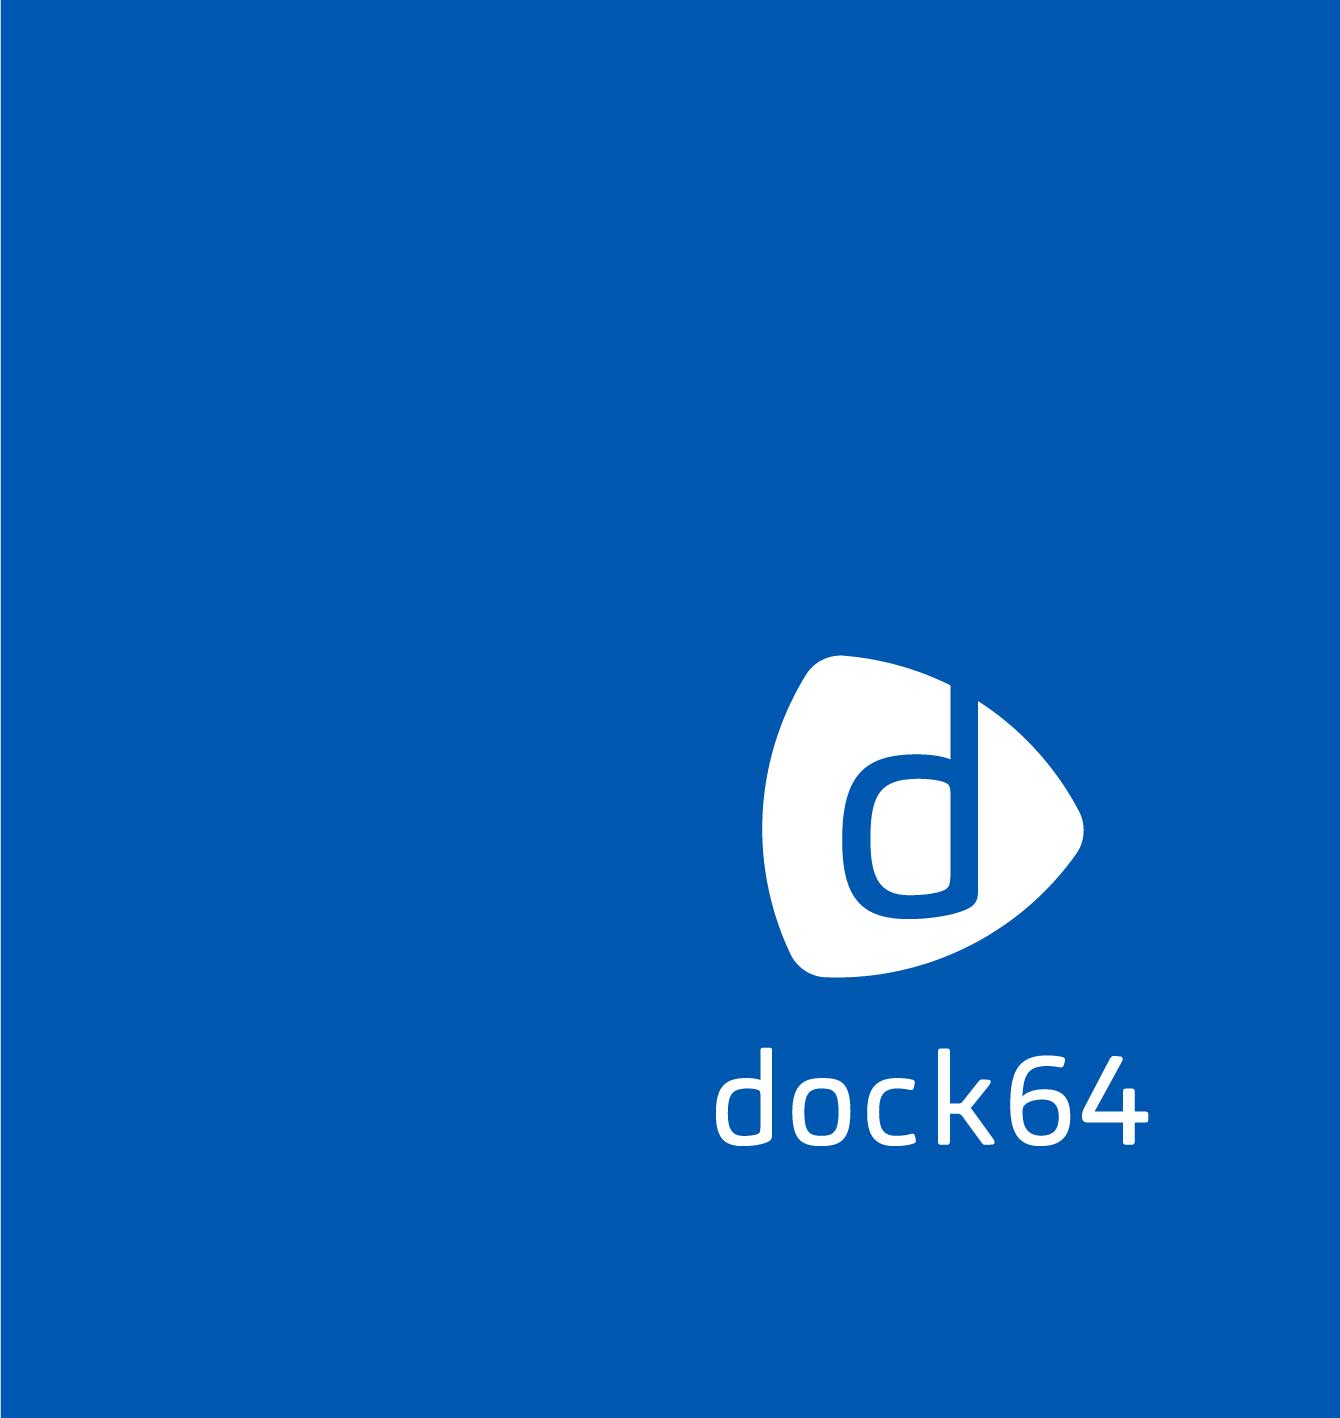 Logodesign dock64 blau